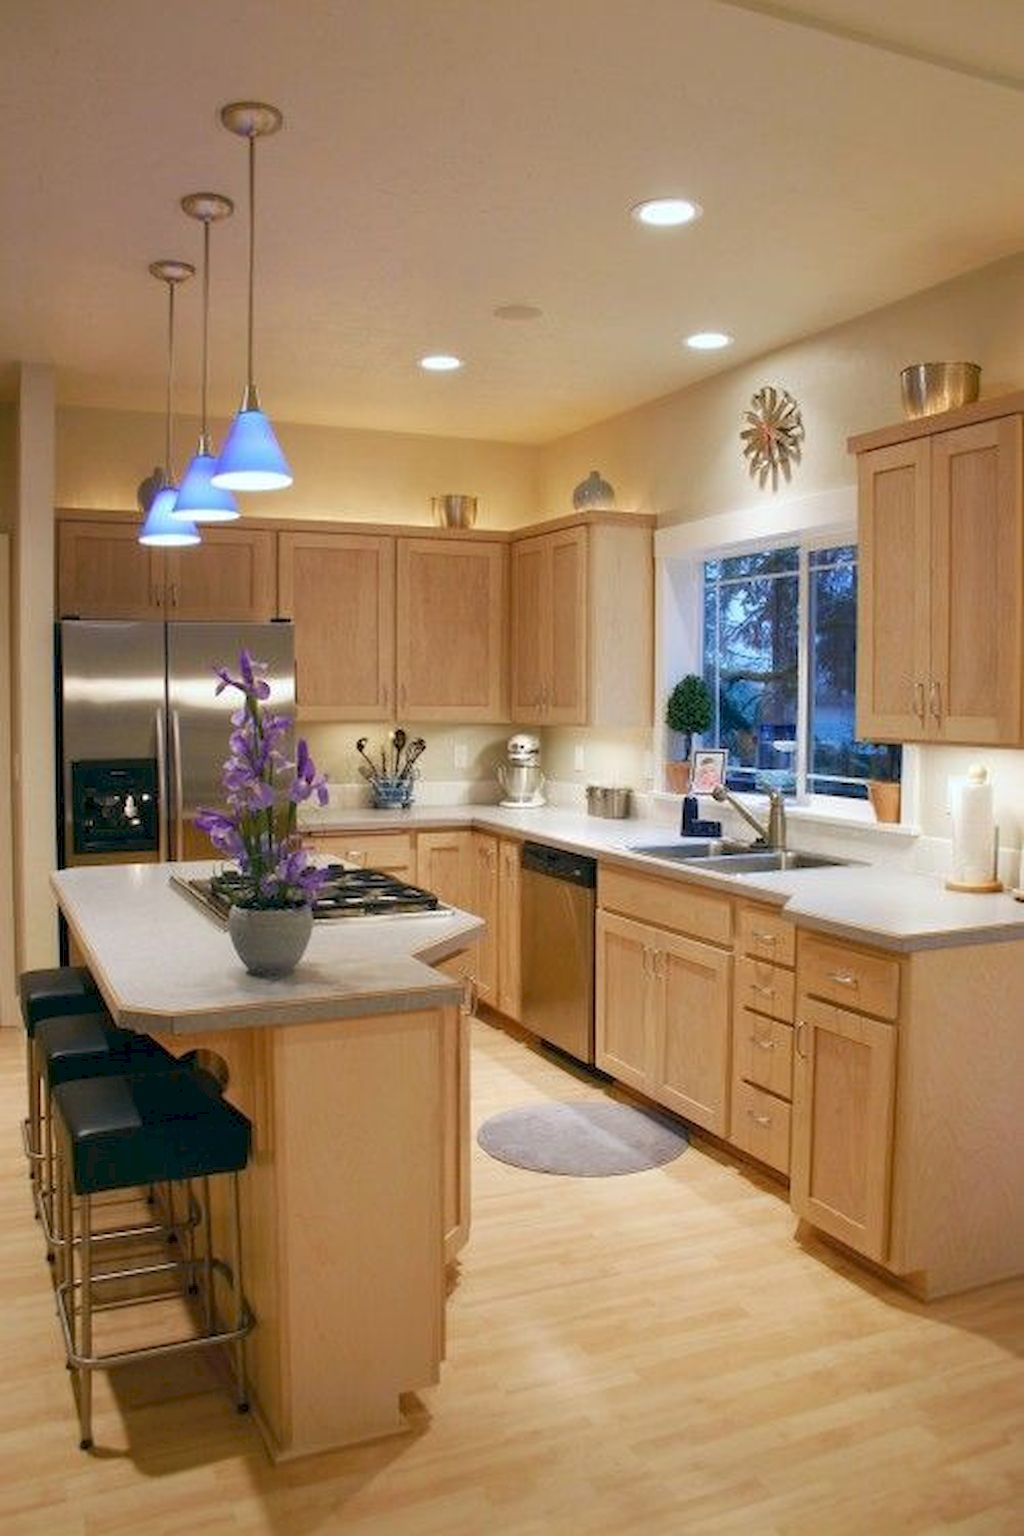 Kitchen Plan And Design For Small Room (99)